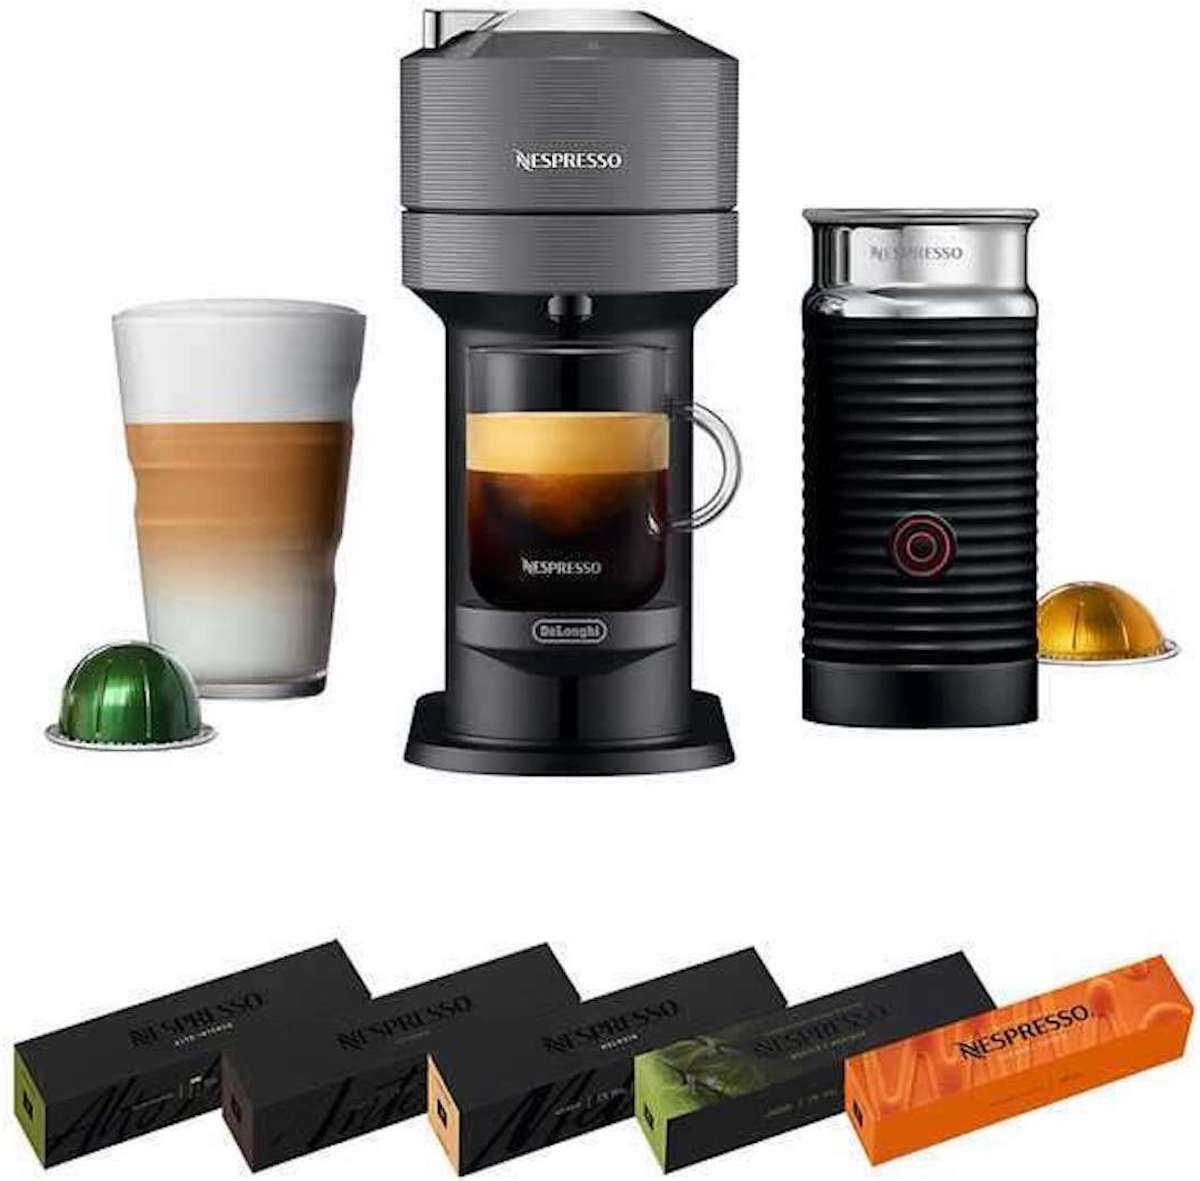 nespresso next maker with frother and multiple pods